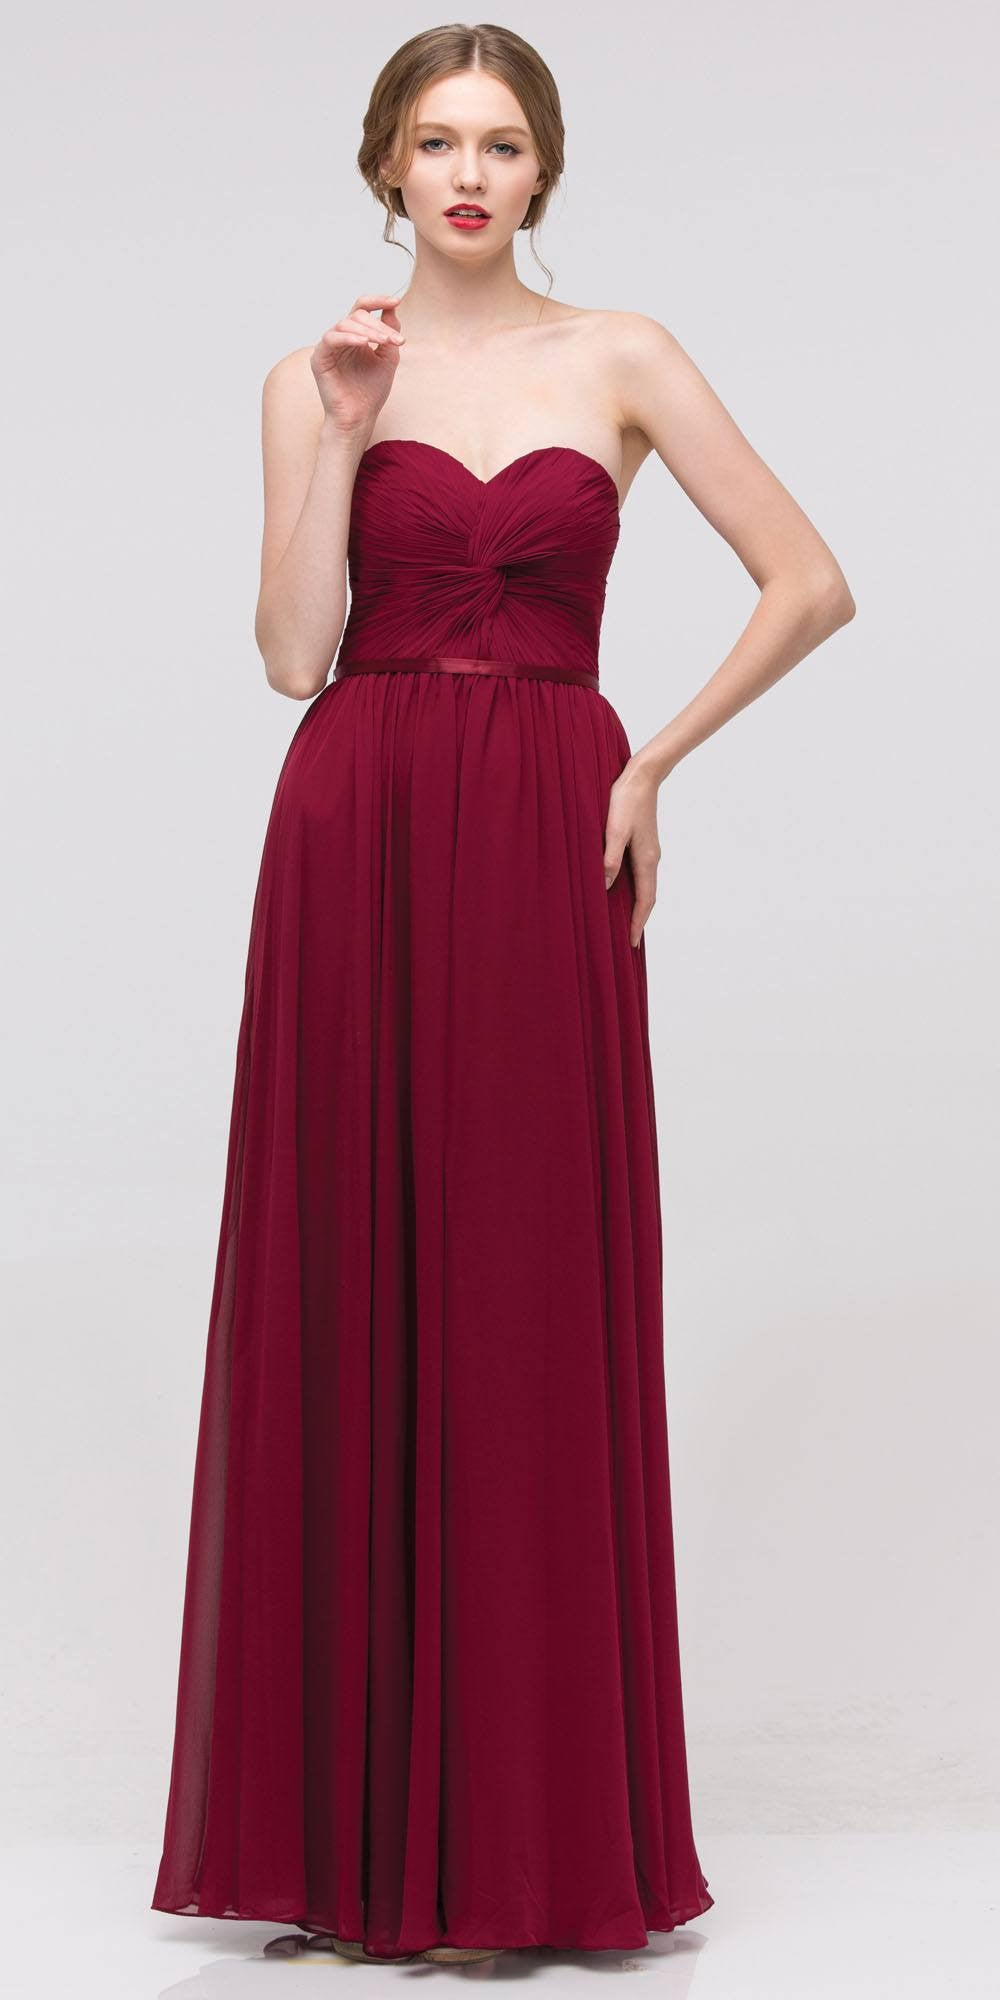 Sweetheart Neck Ruched Bodice Long A Line Burgundy Gown